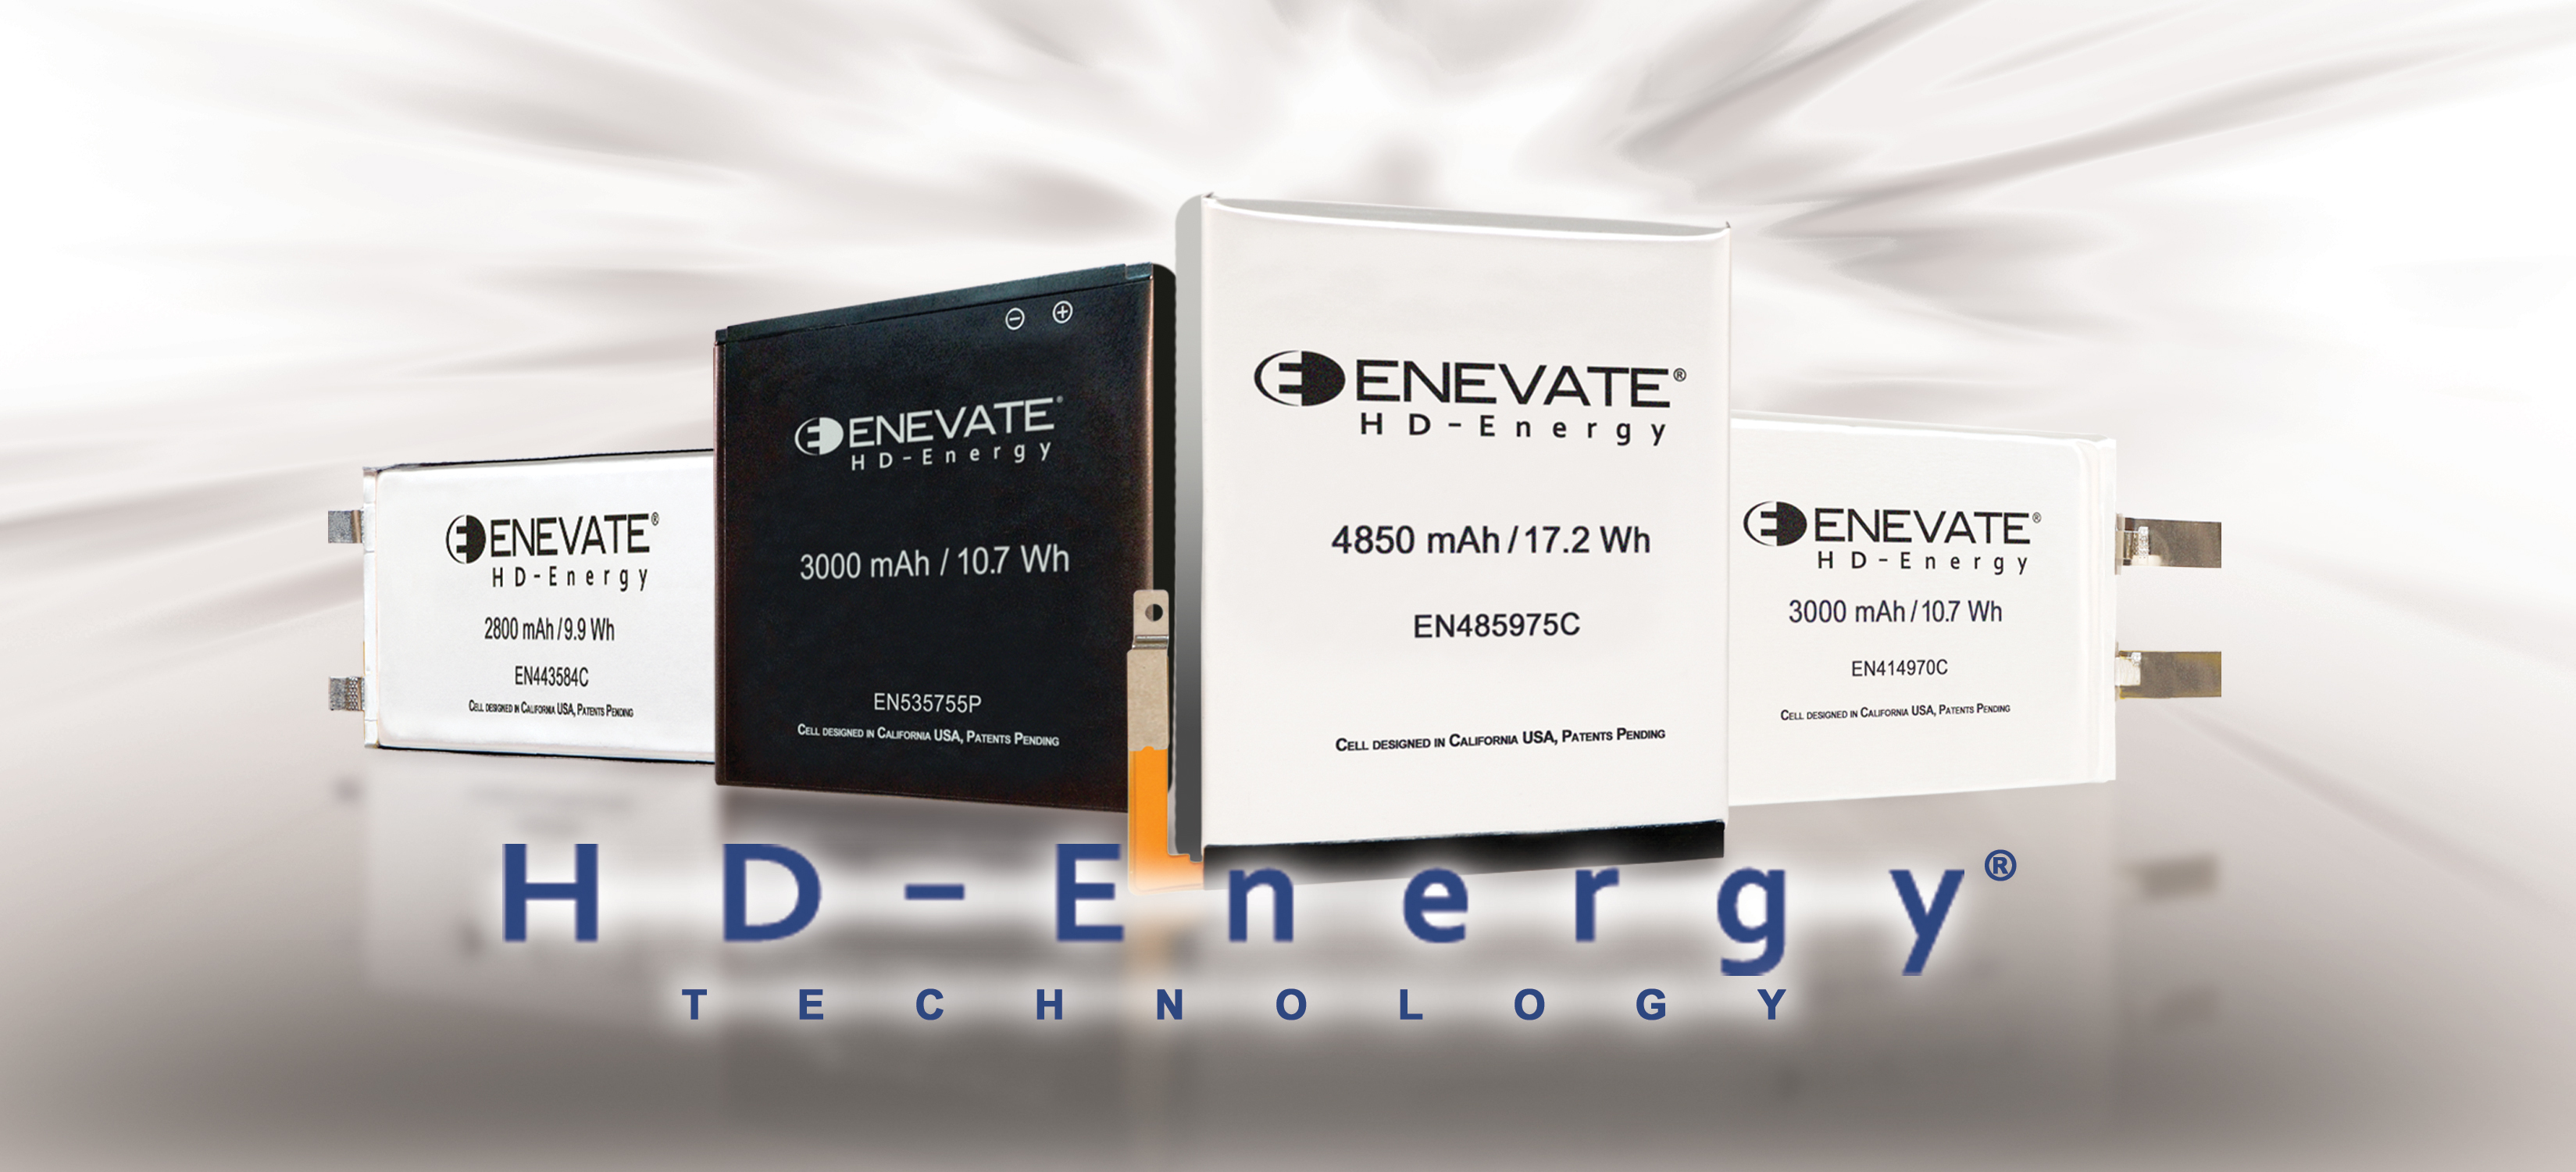 Enevate's ultrafast charging HD-Energy Batteries capable of 90% charge in 15 minutes (Photo: Business Wire)